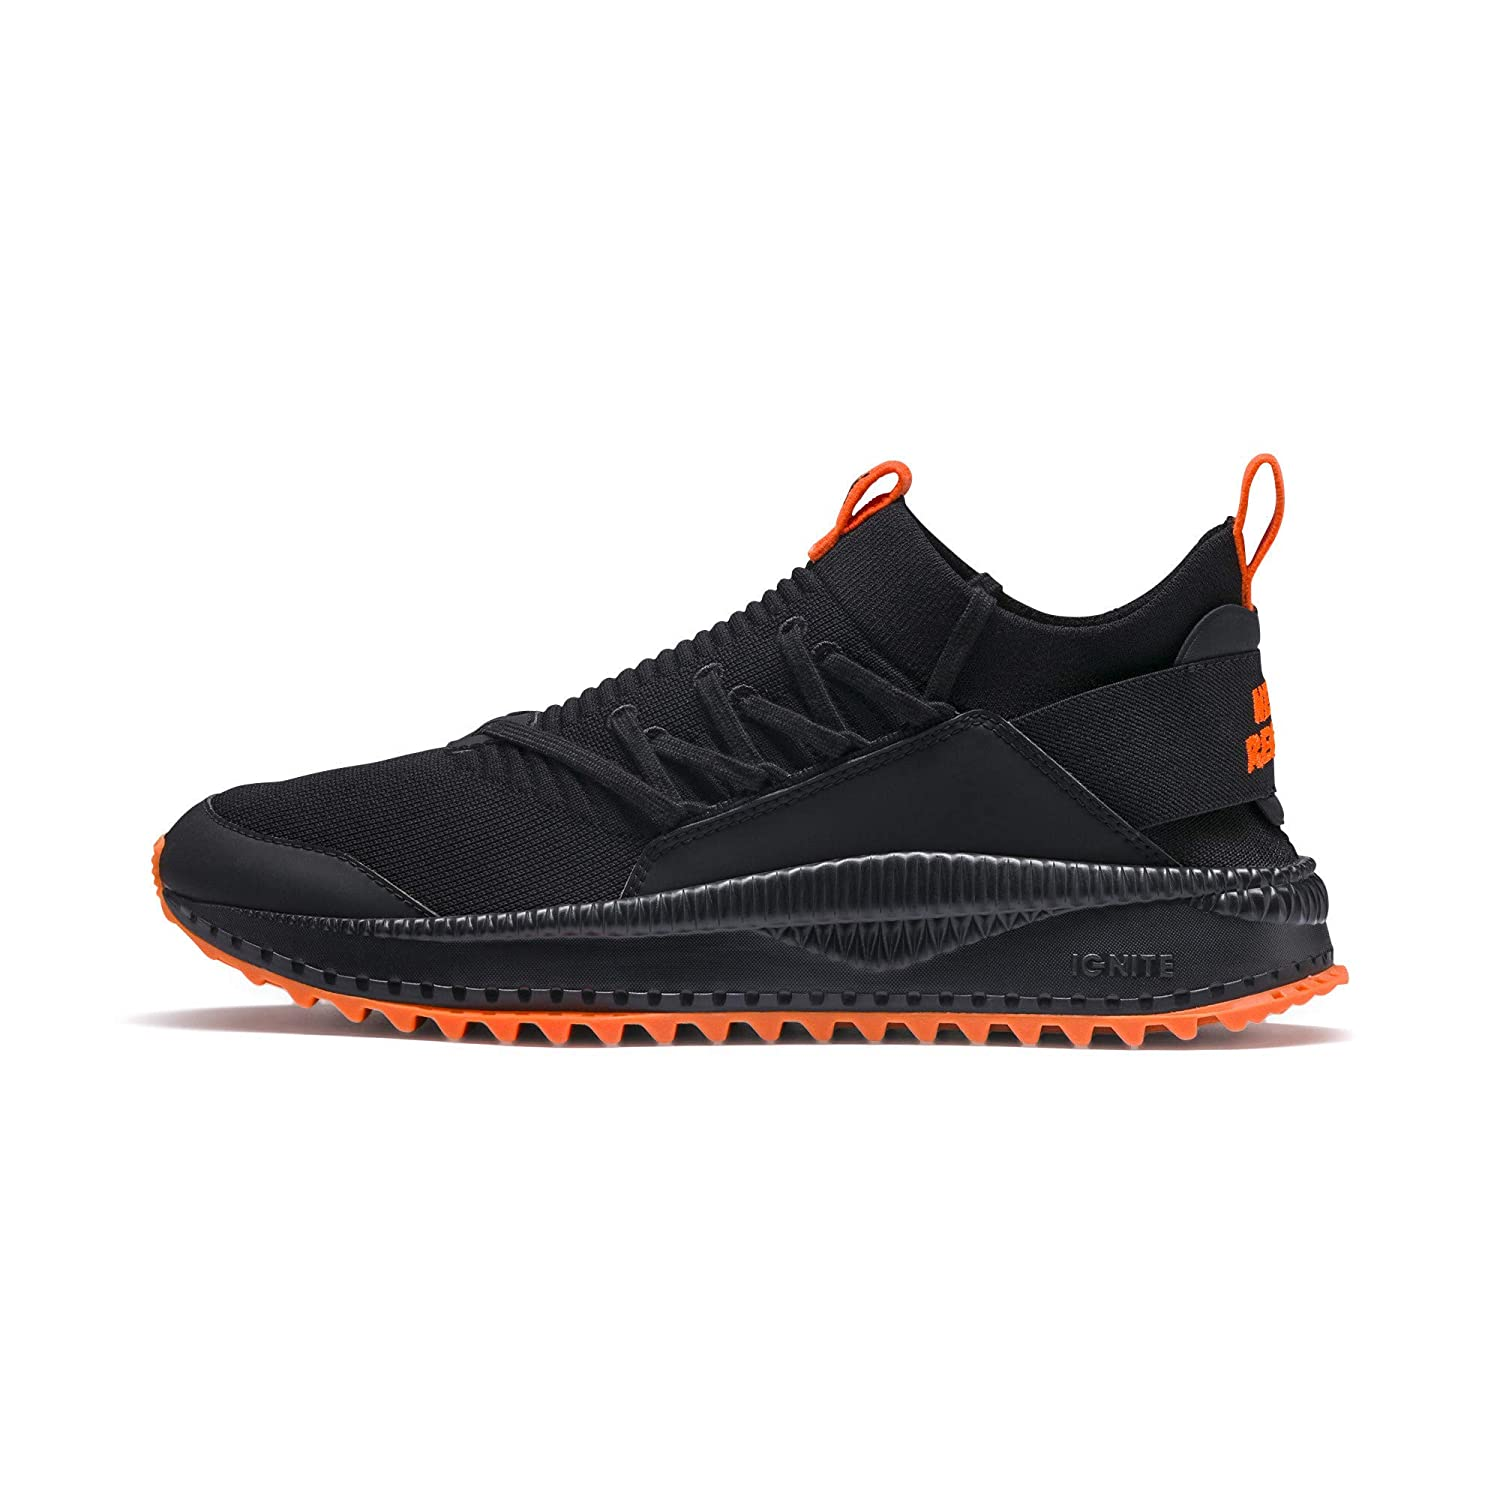 Puma x Atelier New New New Regime Tsugi Jun Turnschuhe 3e3bad